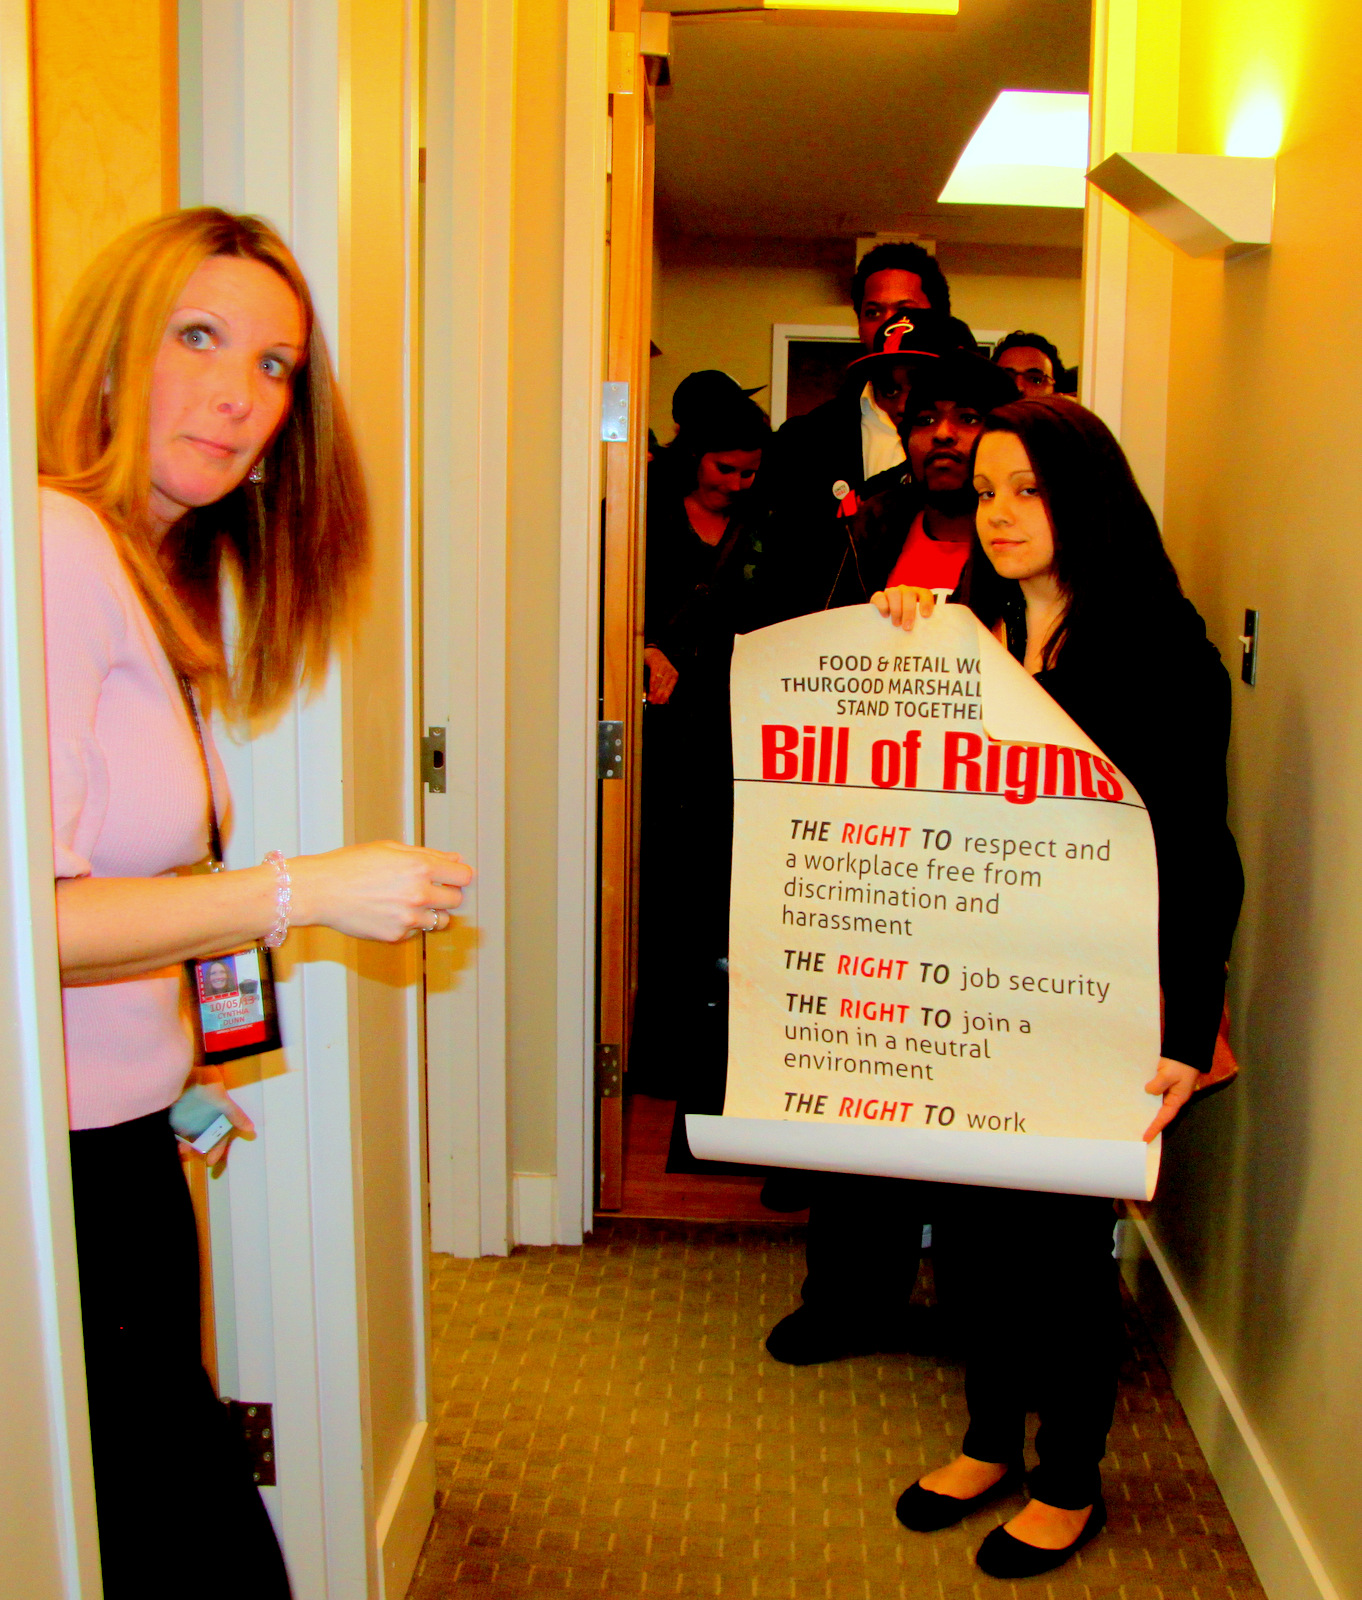 Workers organized by Unite Here presented a Bill of Rights to the company that manages airport concessions. (Photo by Fern Shen)